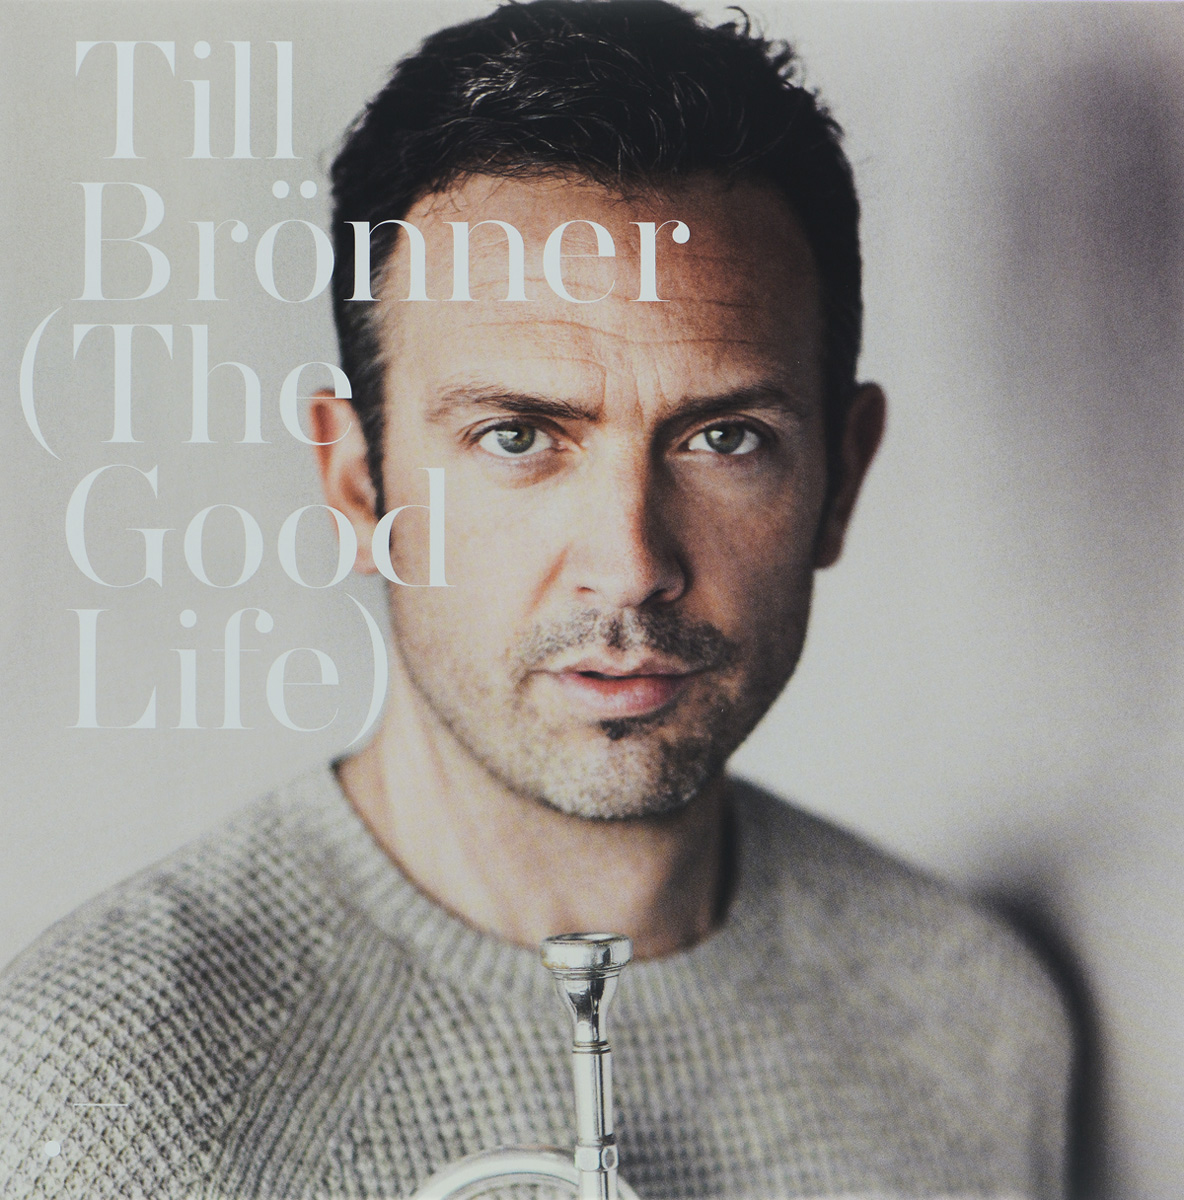 Тилл Броннер Till Bronner. The Good Life (2 LP) цены онлайн